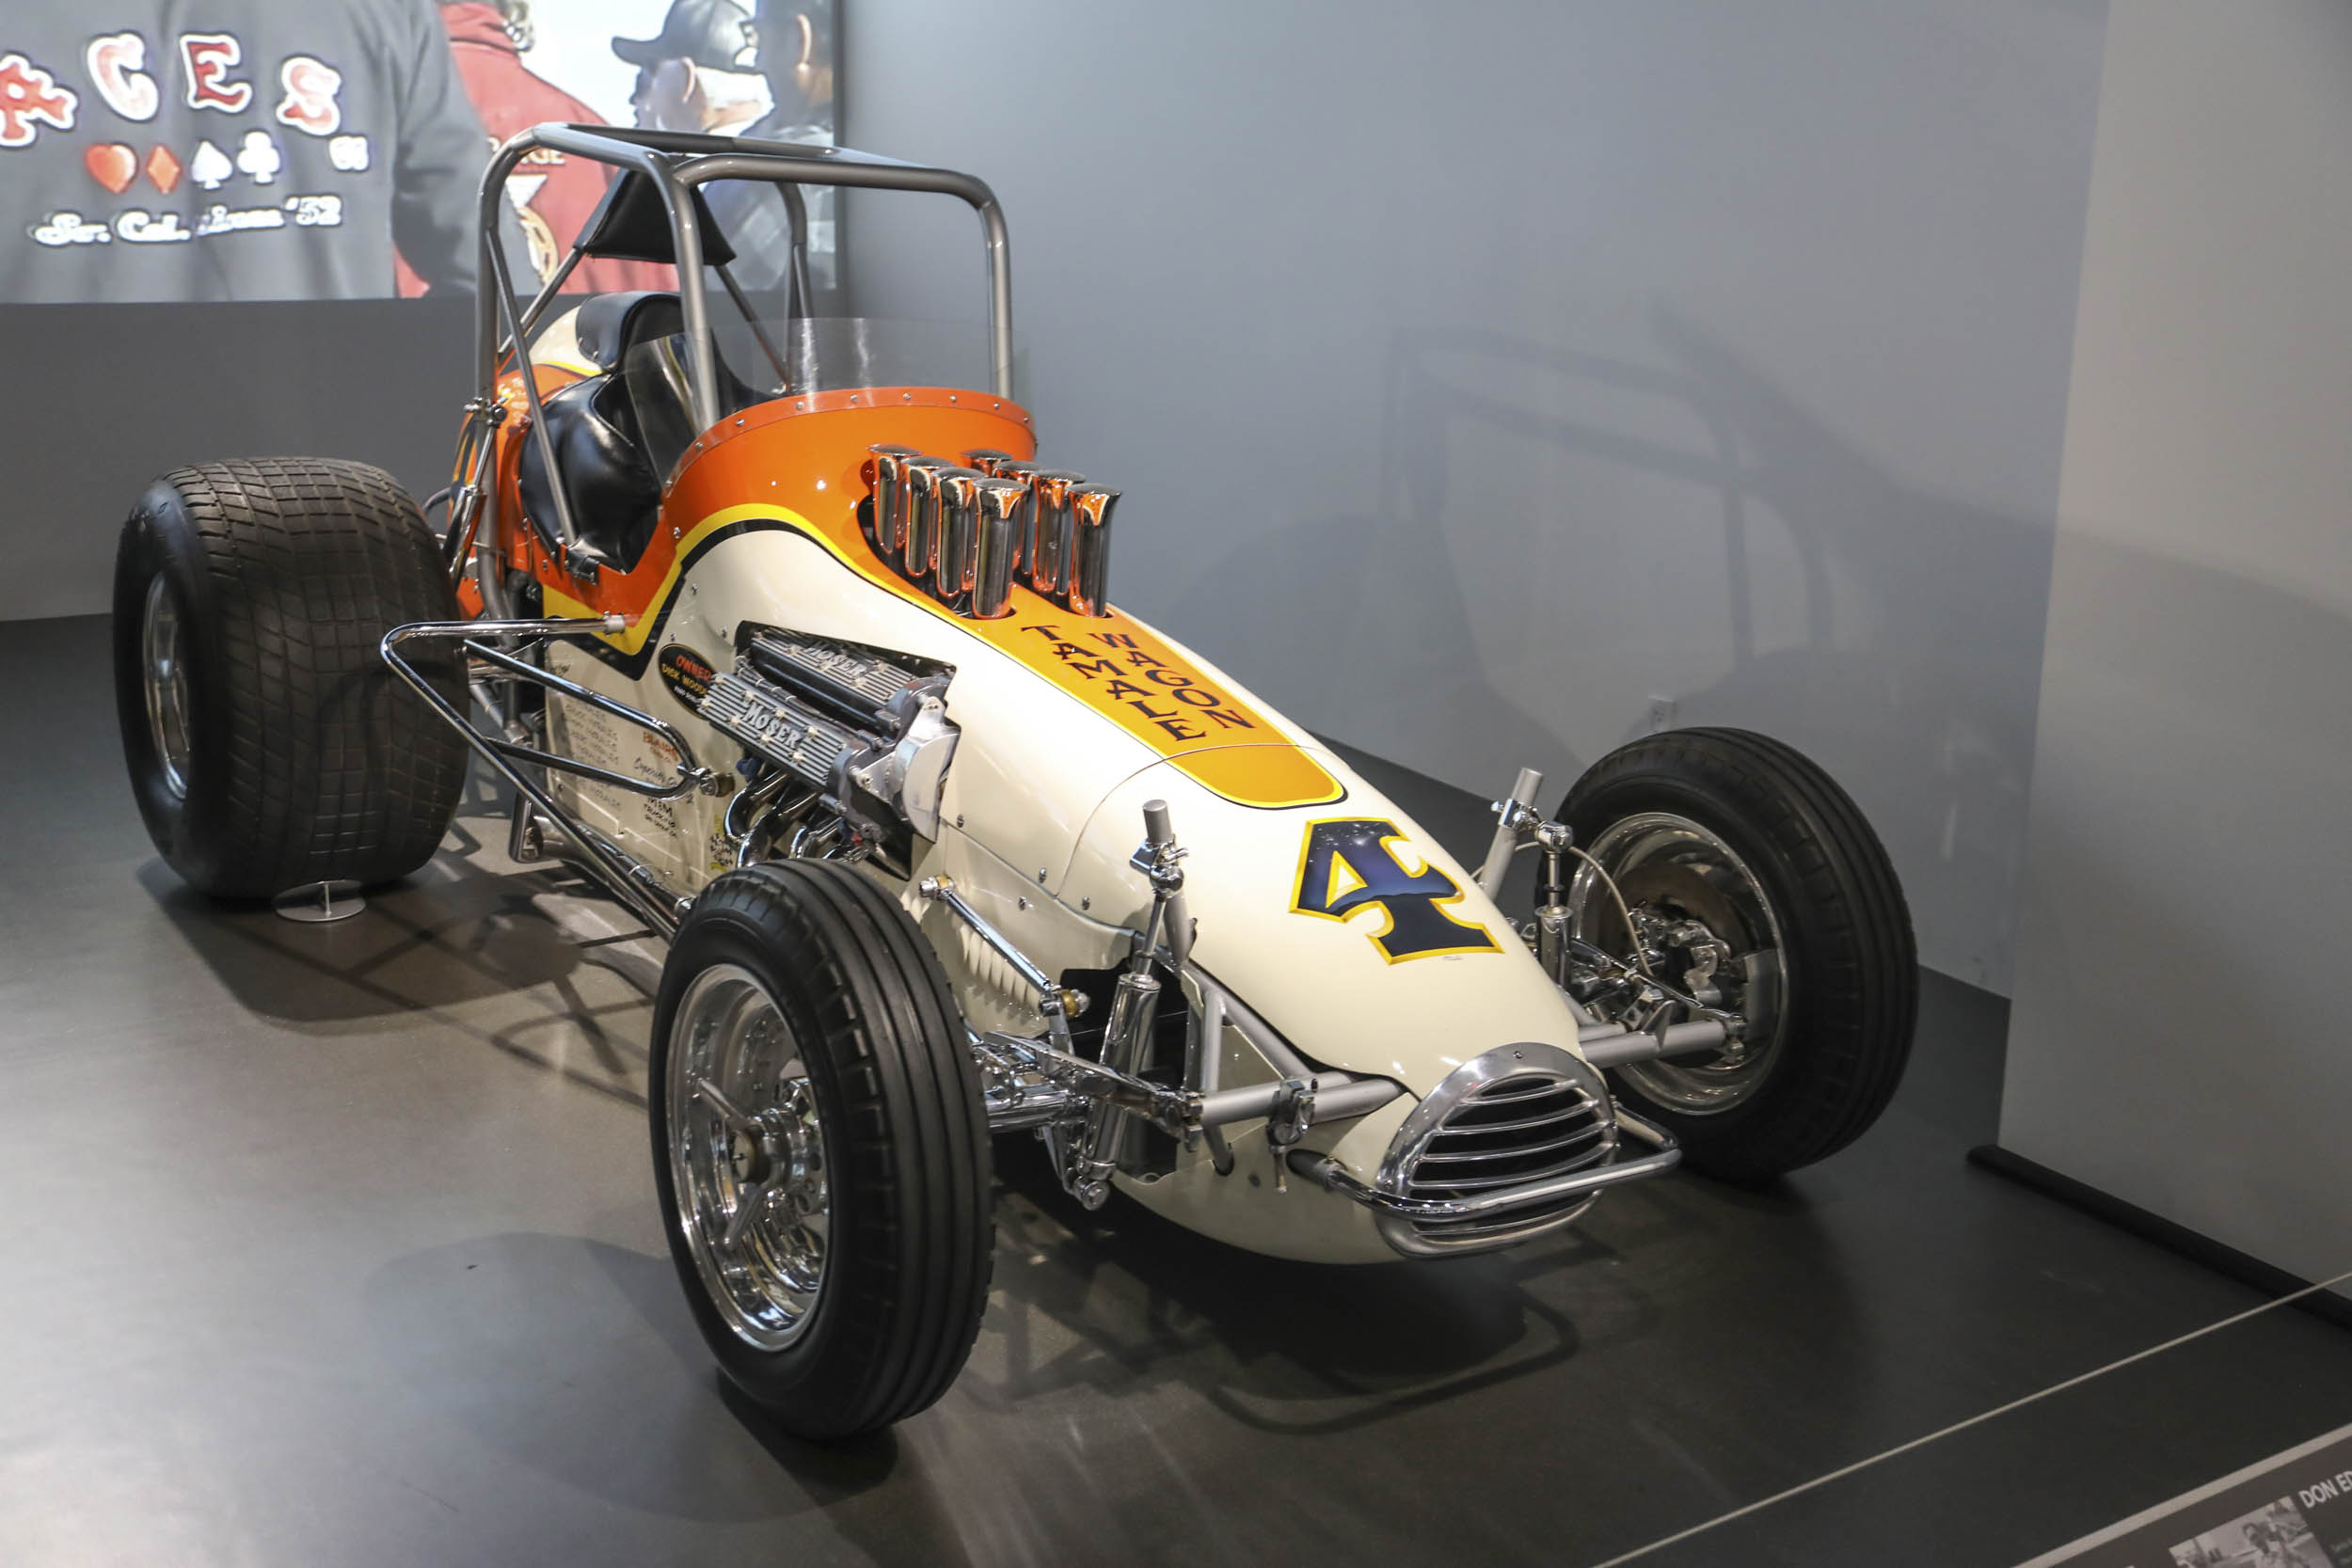 The Tamale Wagon was powered by a 302 small-block Chevy